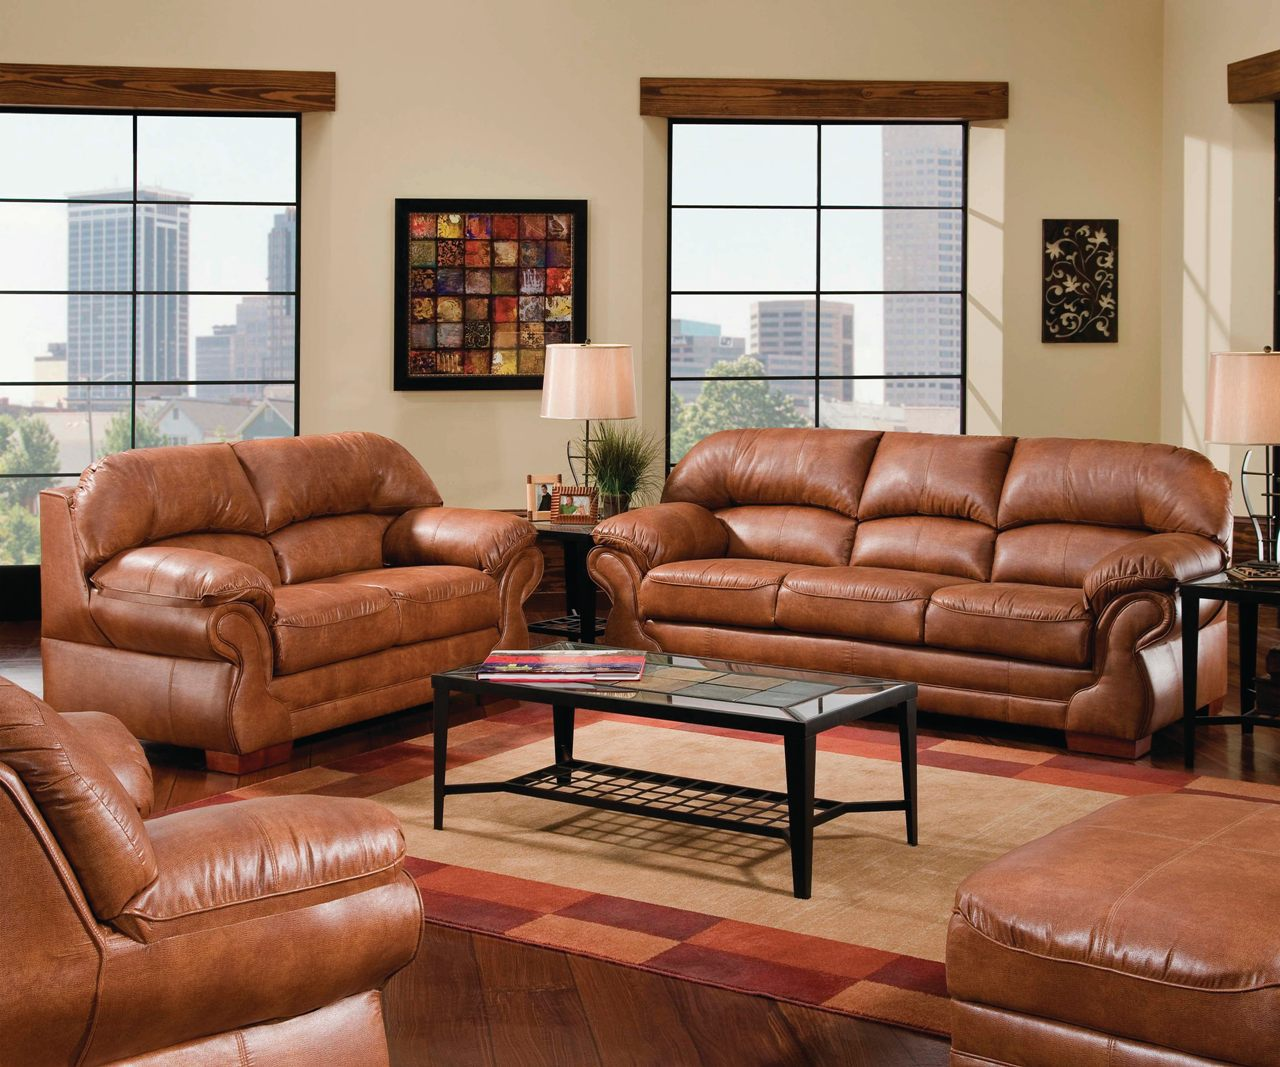 Visit Our Furniture Store In Lincoln Ne Household Appliances Salvage Warehouse